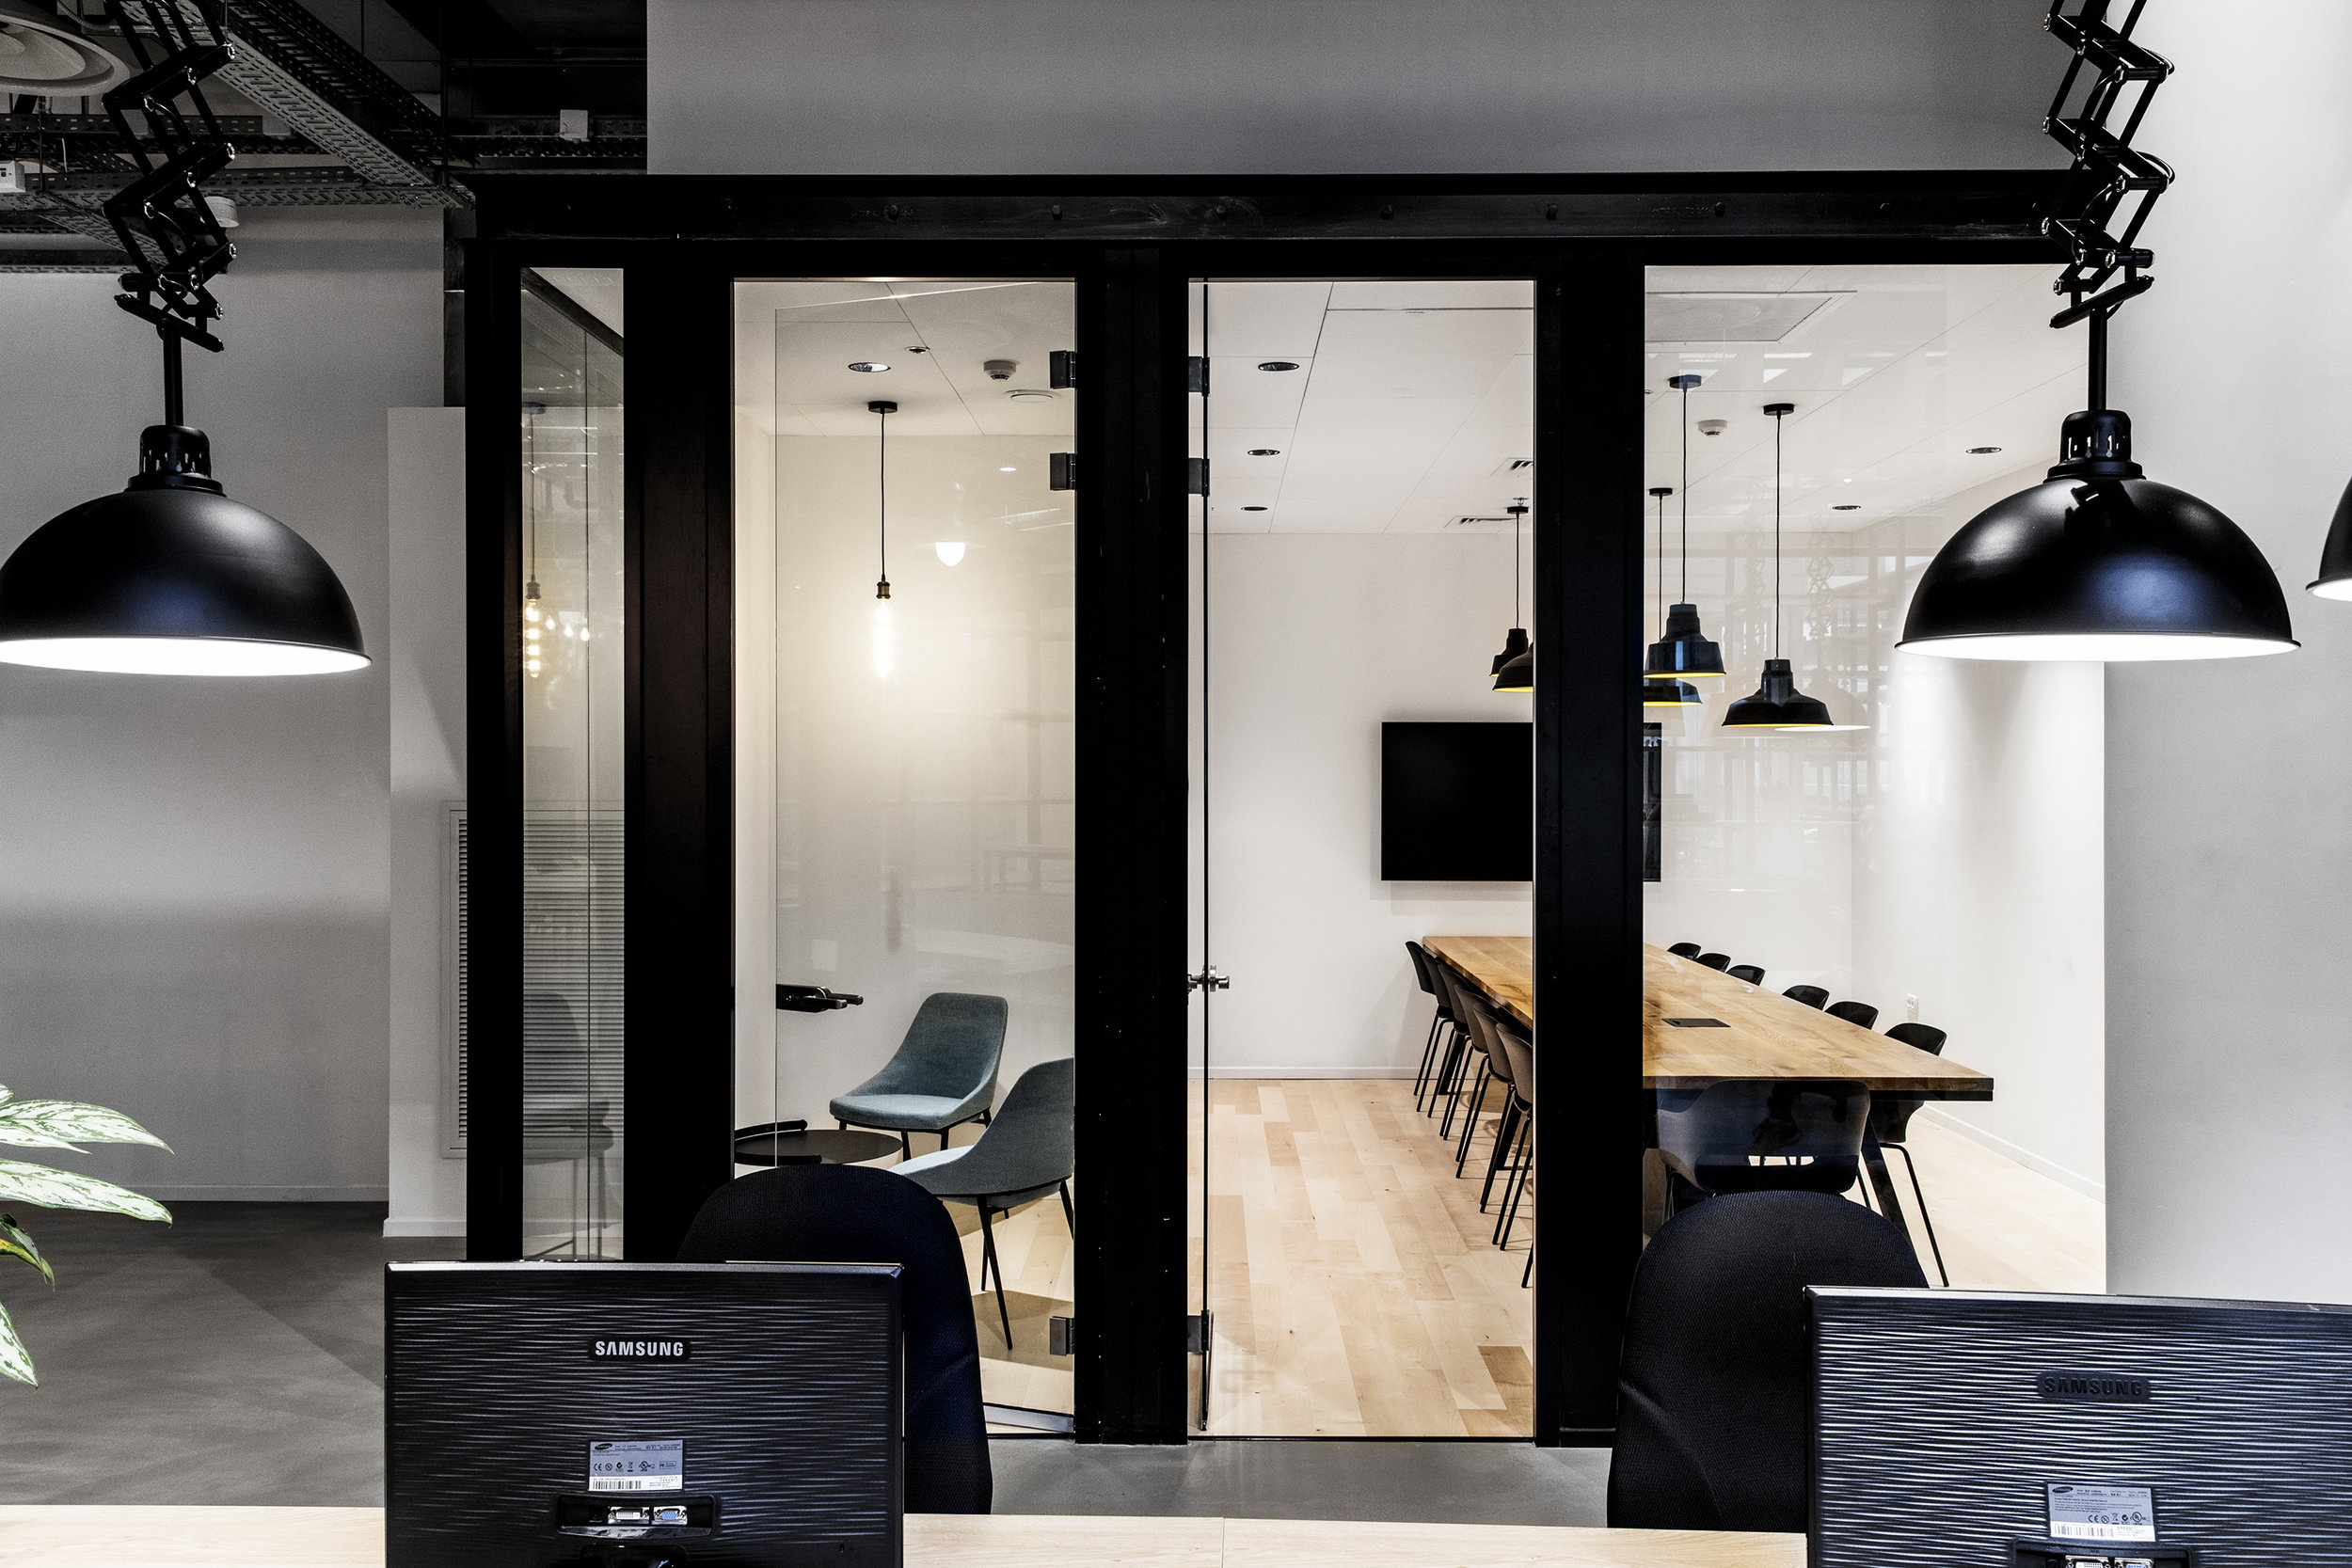 028_סטודיו רואי דוד - ROY DAVID ARCHITECTURE - JOYTUNES OFFICES.jpg